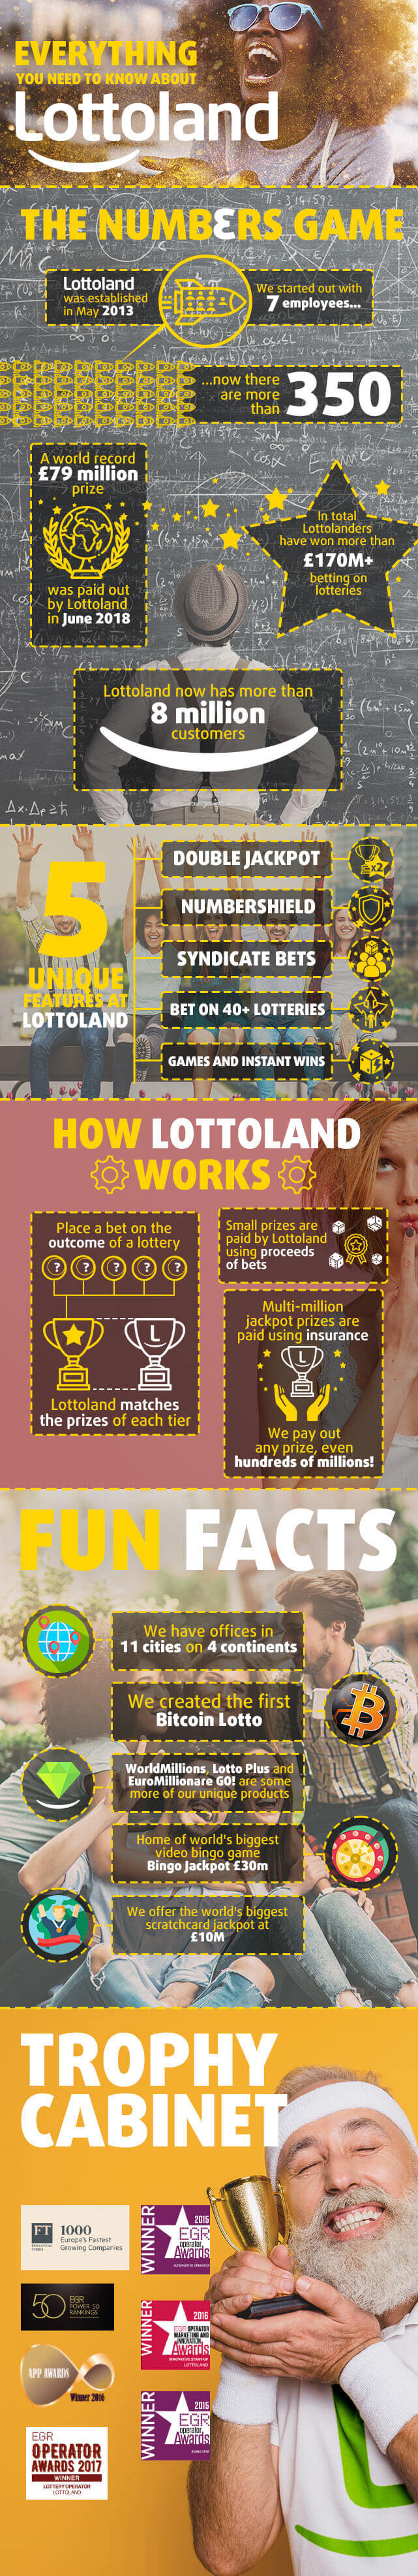 How Does Lottoland Pay Jackpot Winners?